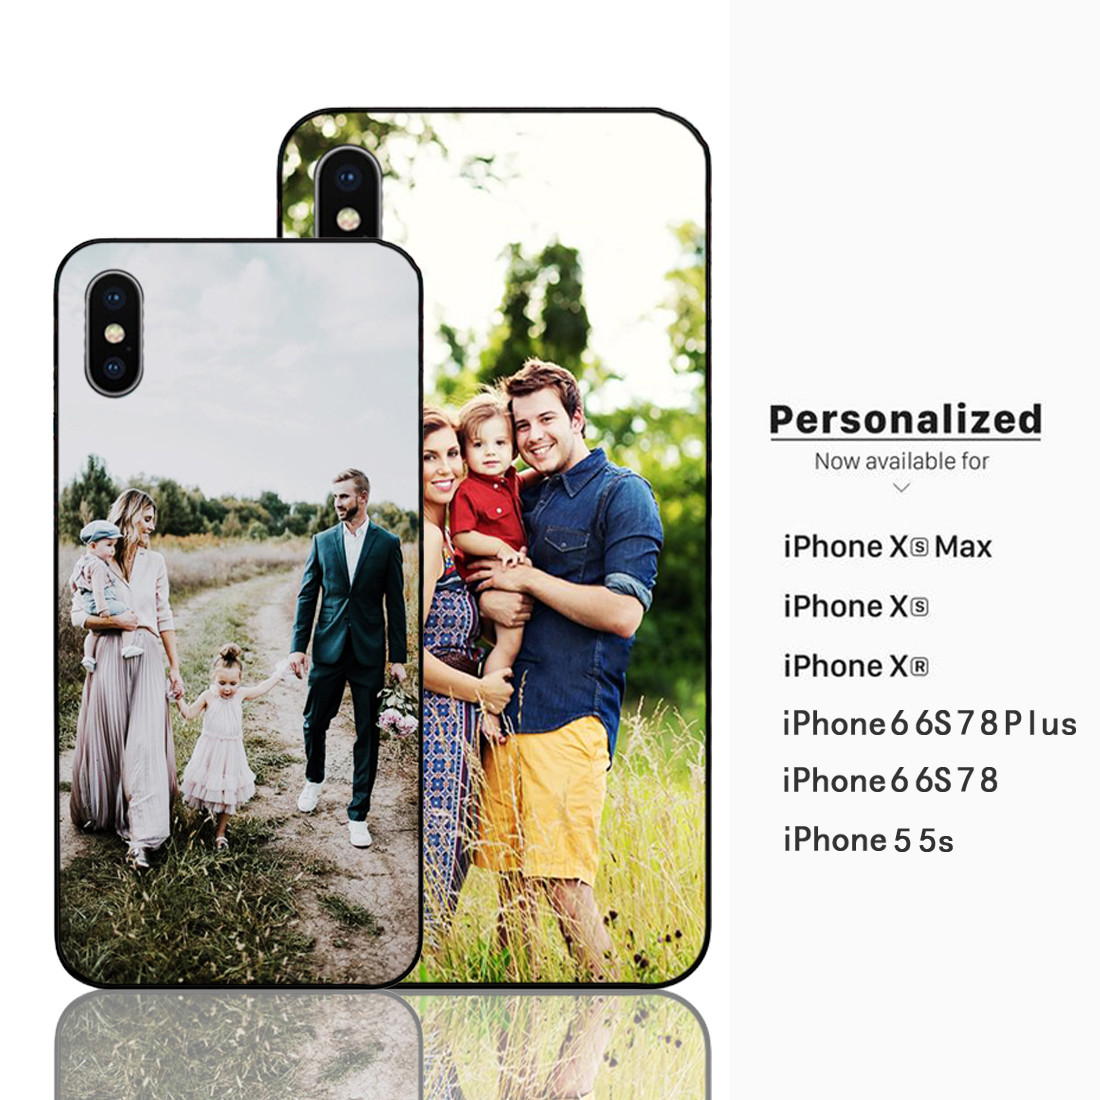 Custom Design Photo Valentines Day Gift Her Phone cases Black Sotf TPU Cover Case for Apple iPhone 6 6S 7 8 Plus 5s X XR XS MAX